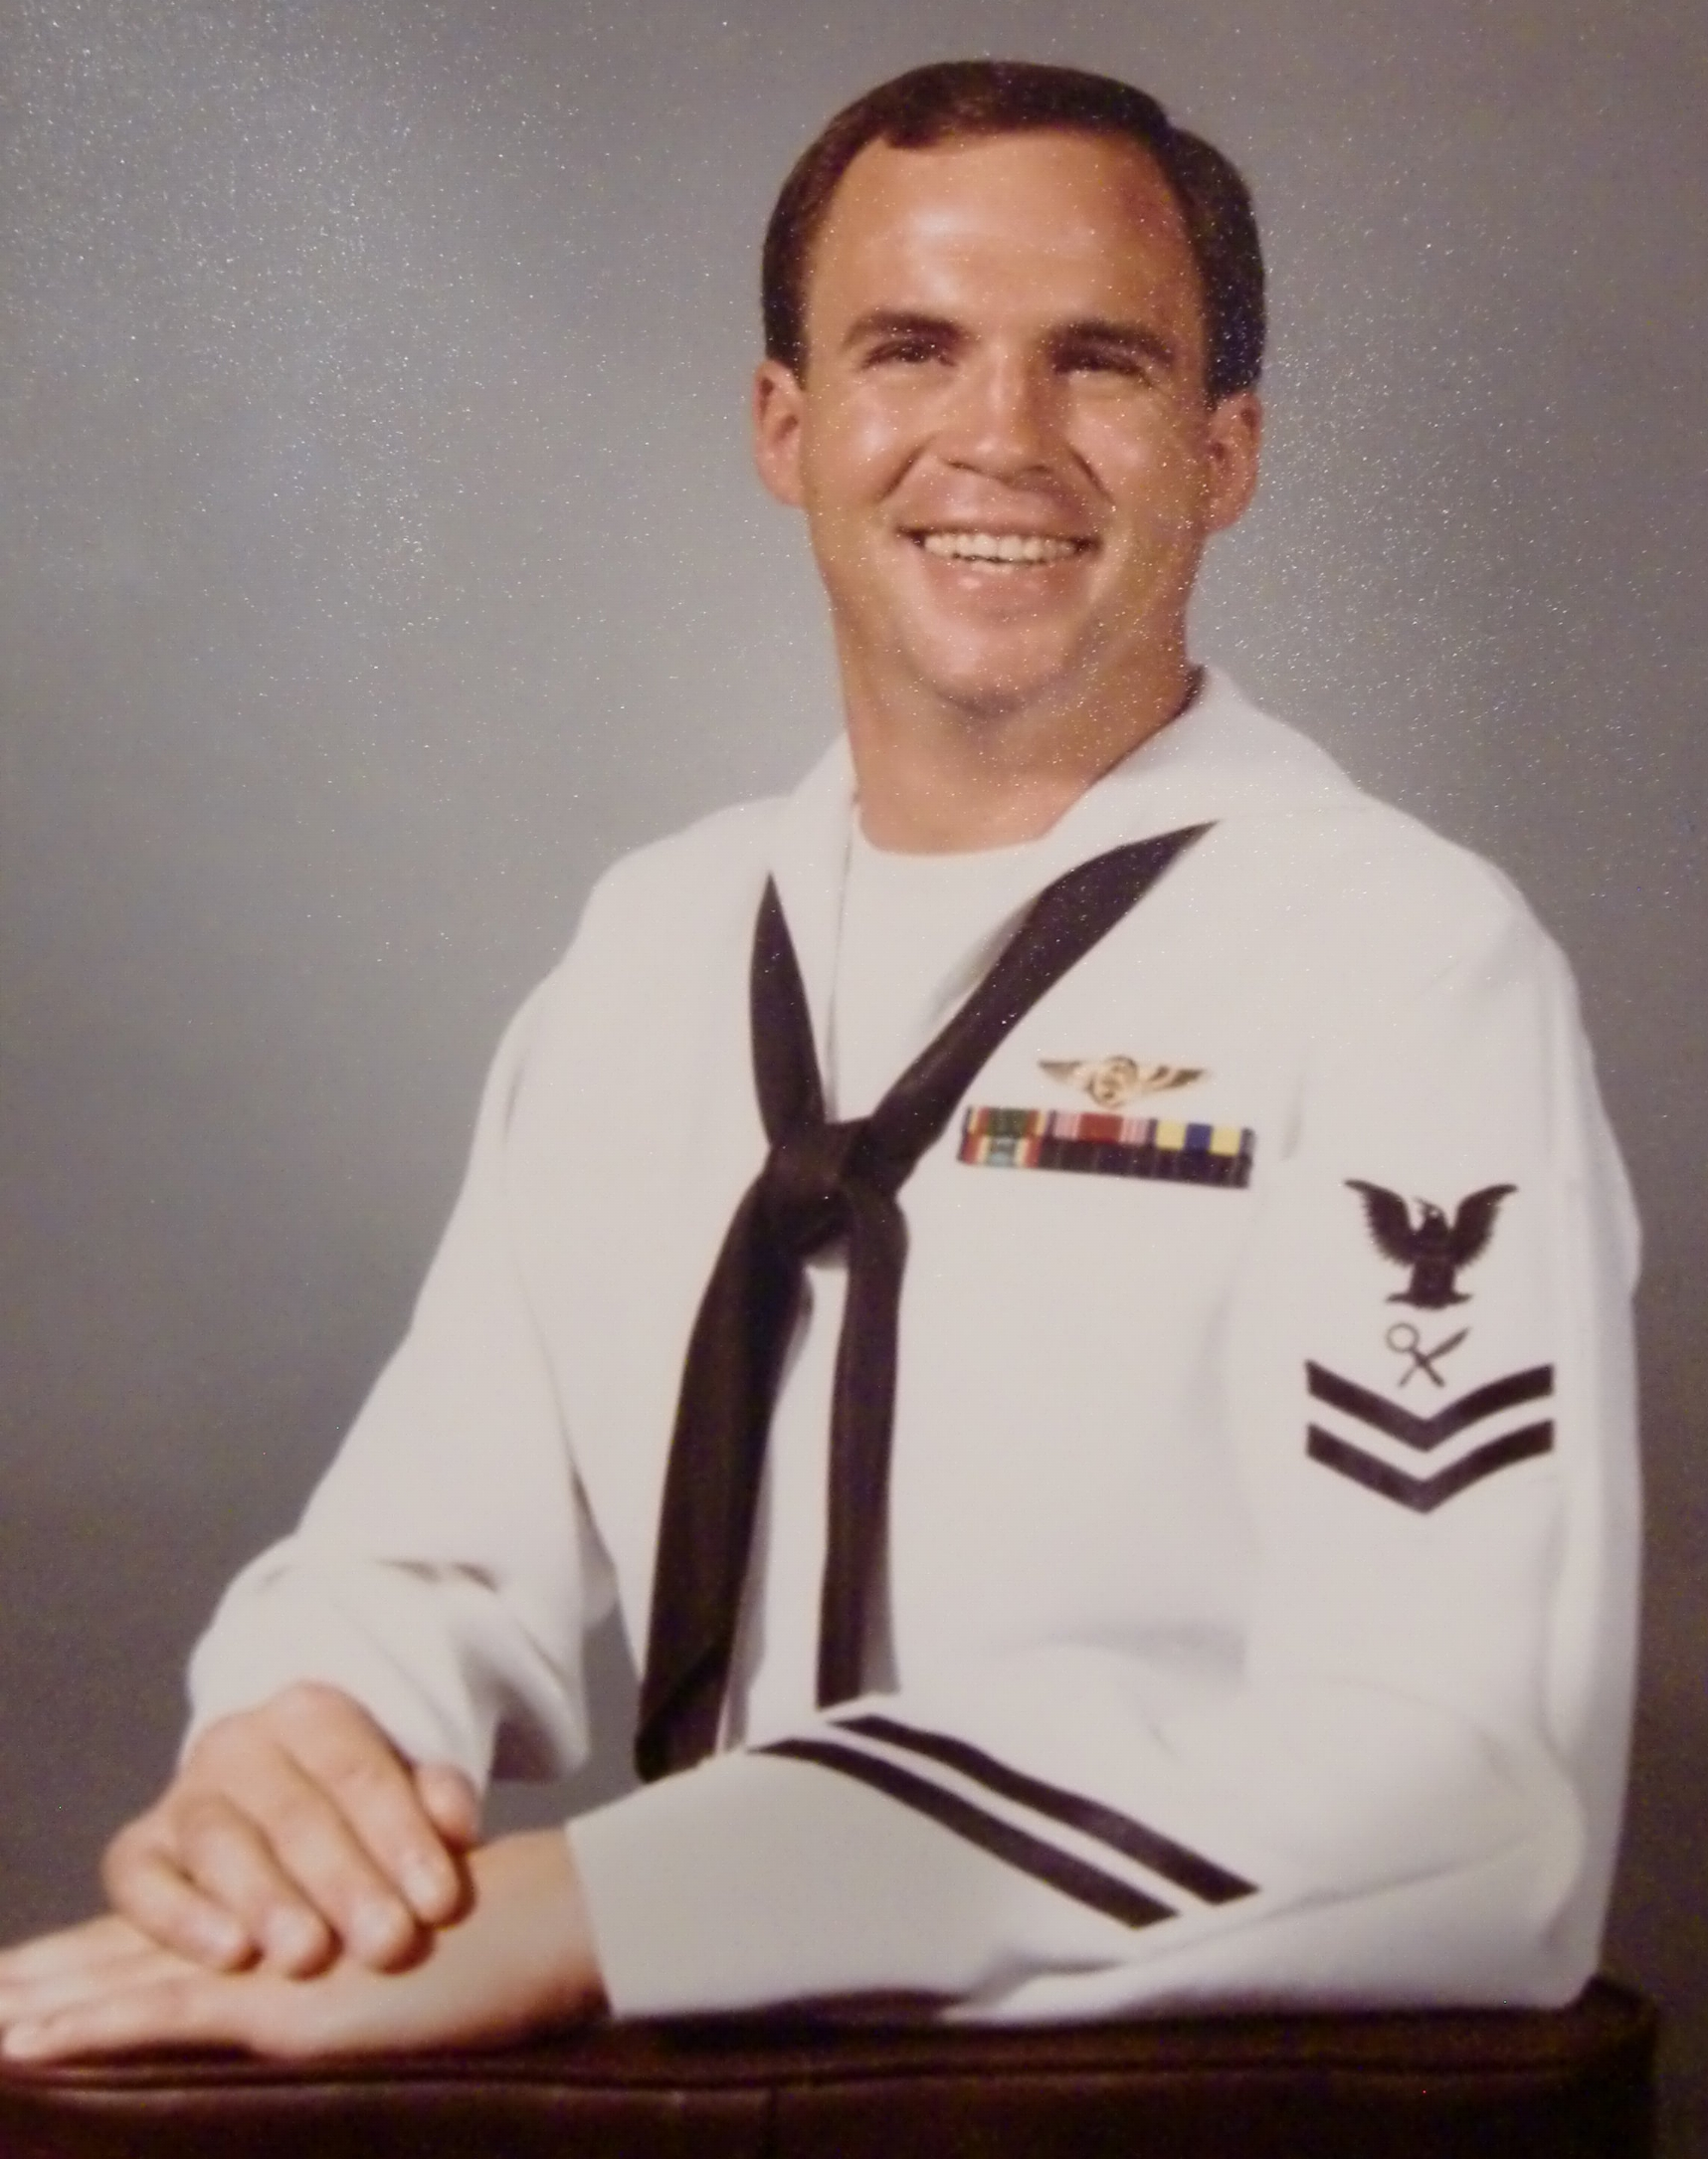 Dave Teed in his early days with the Navy.